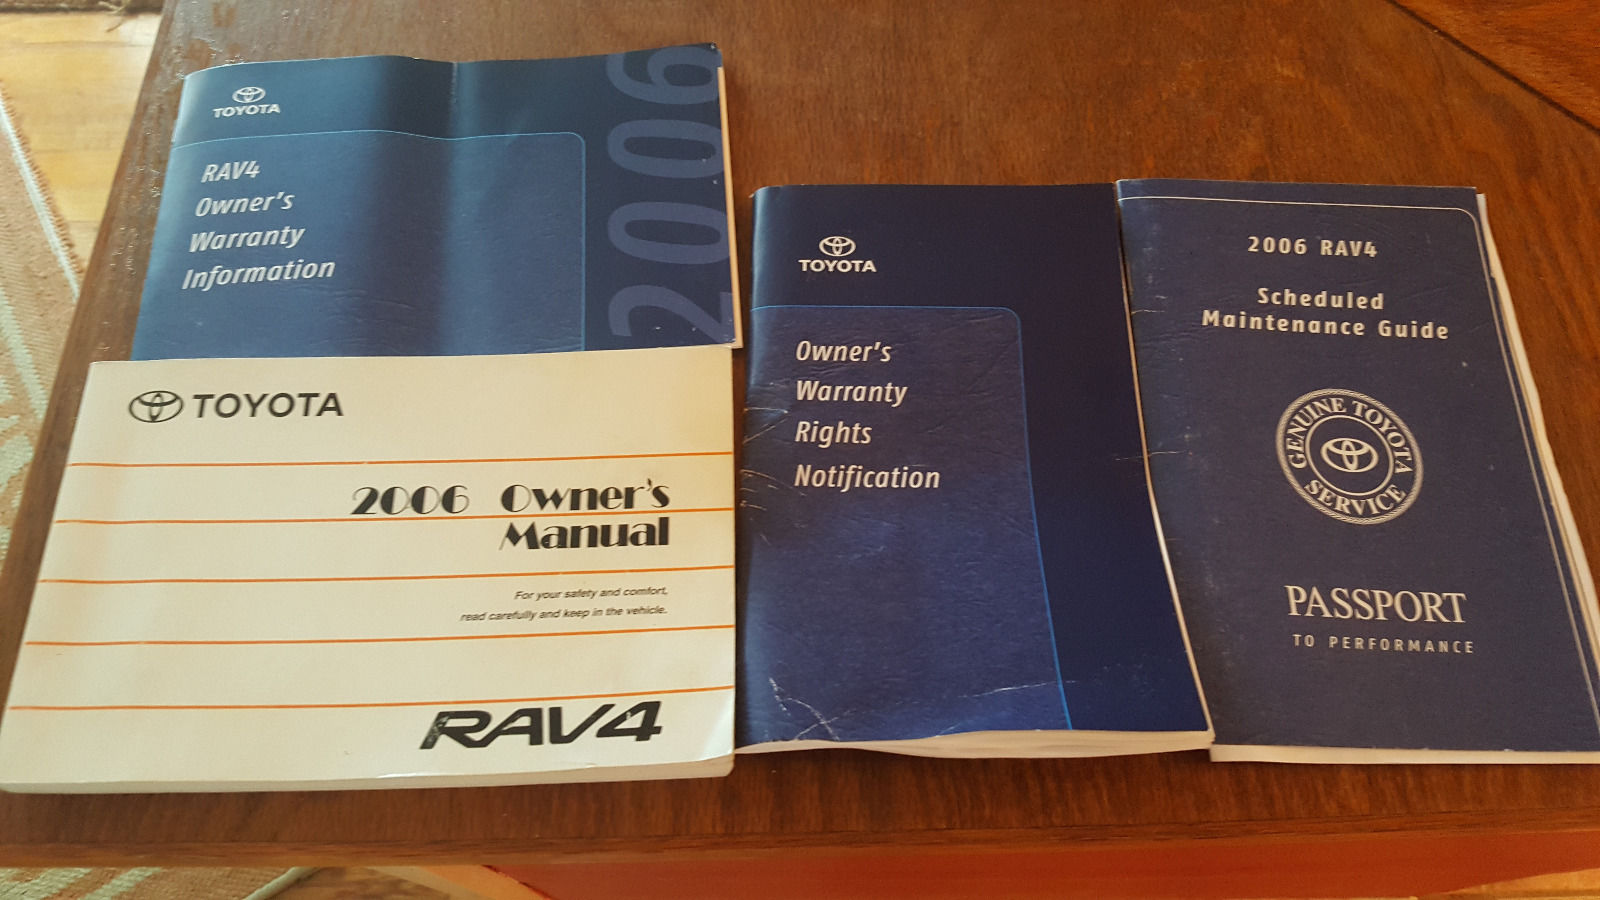 Amazing 2006 Toyota Rav4 Owner's Manual 2017 2018